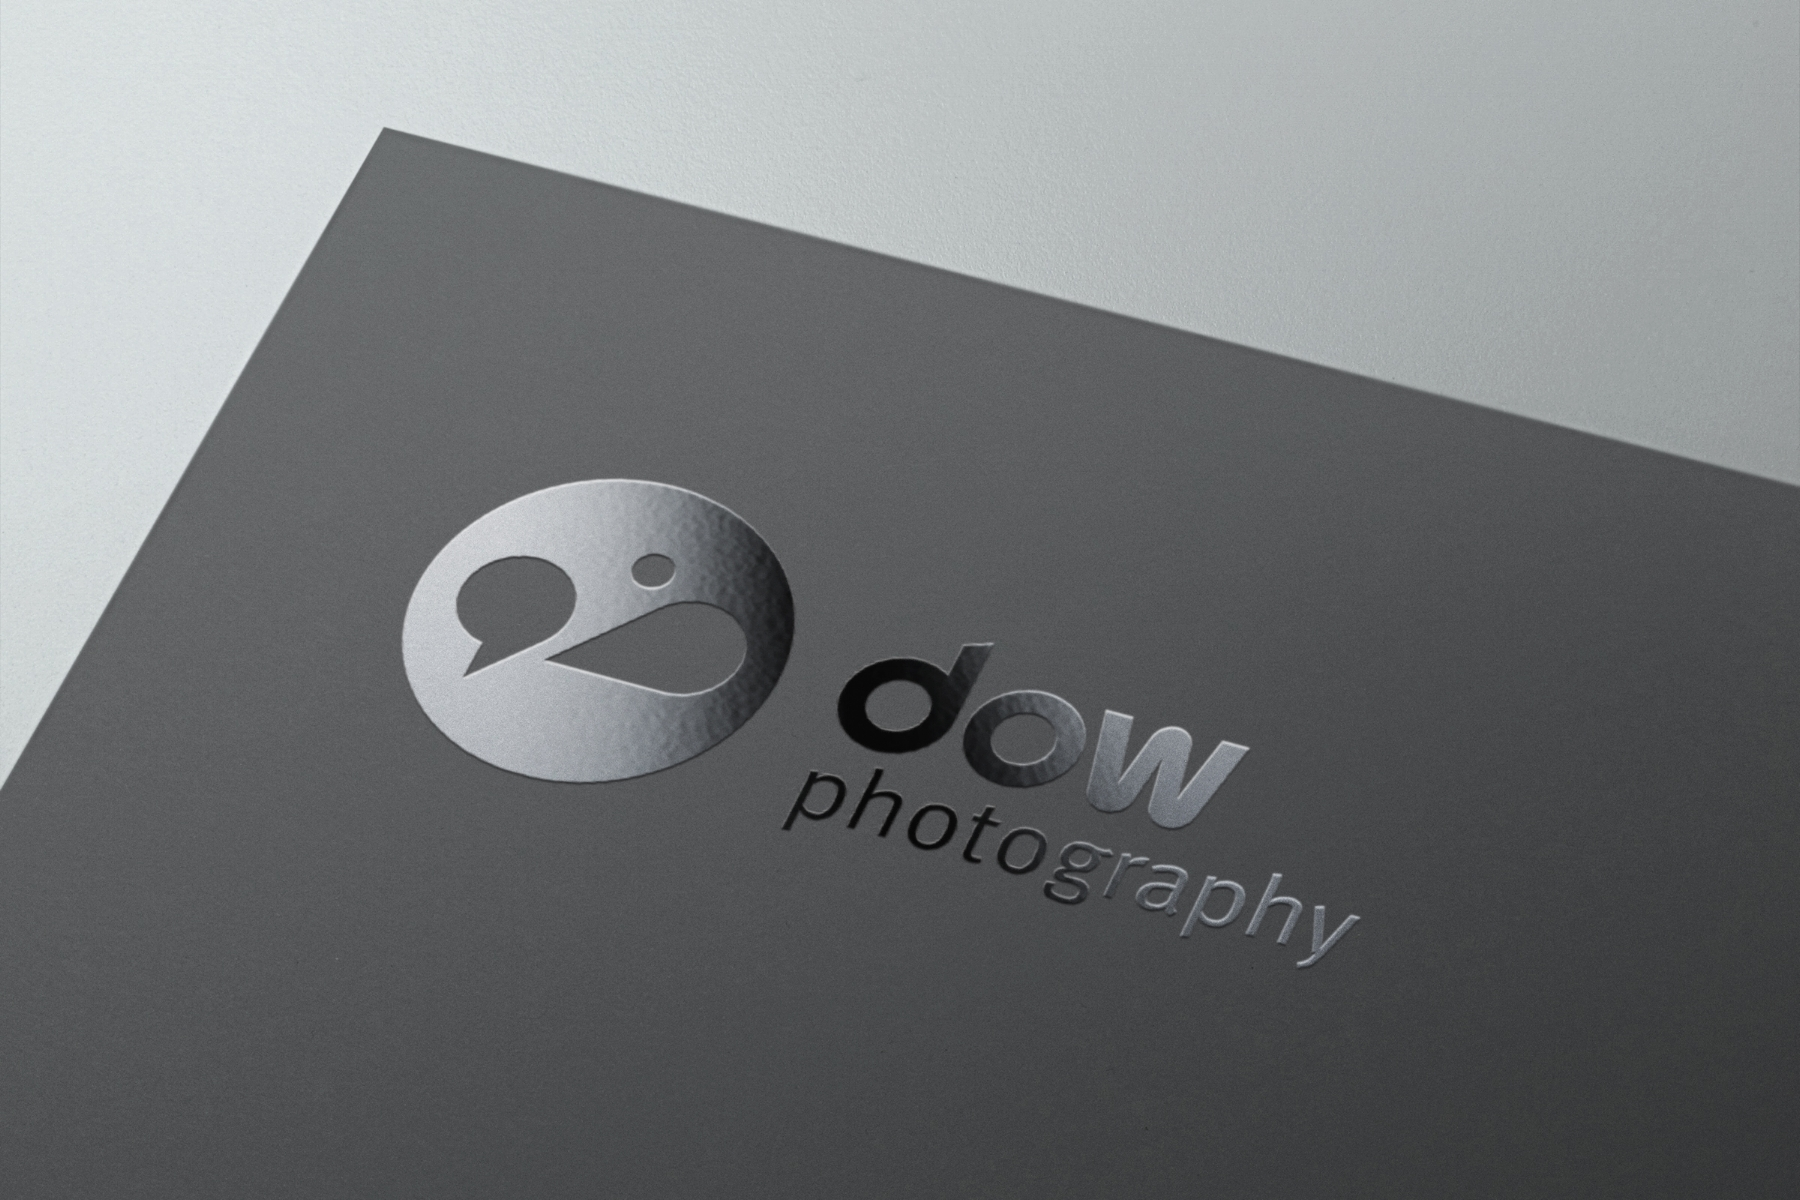 Dow Photography Studio